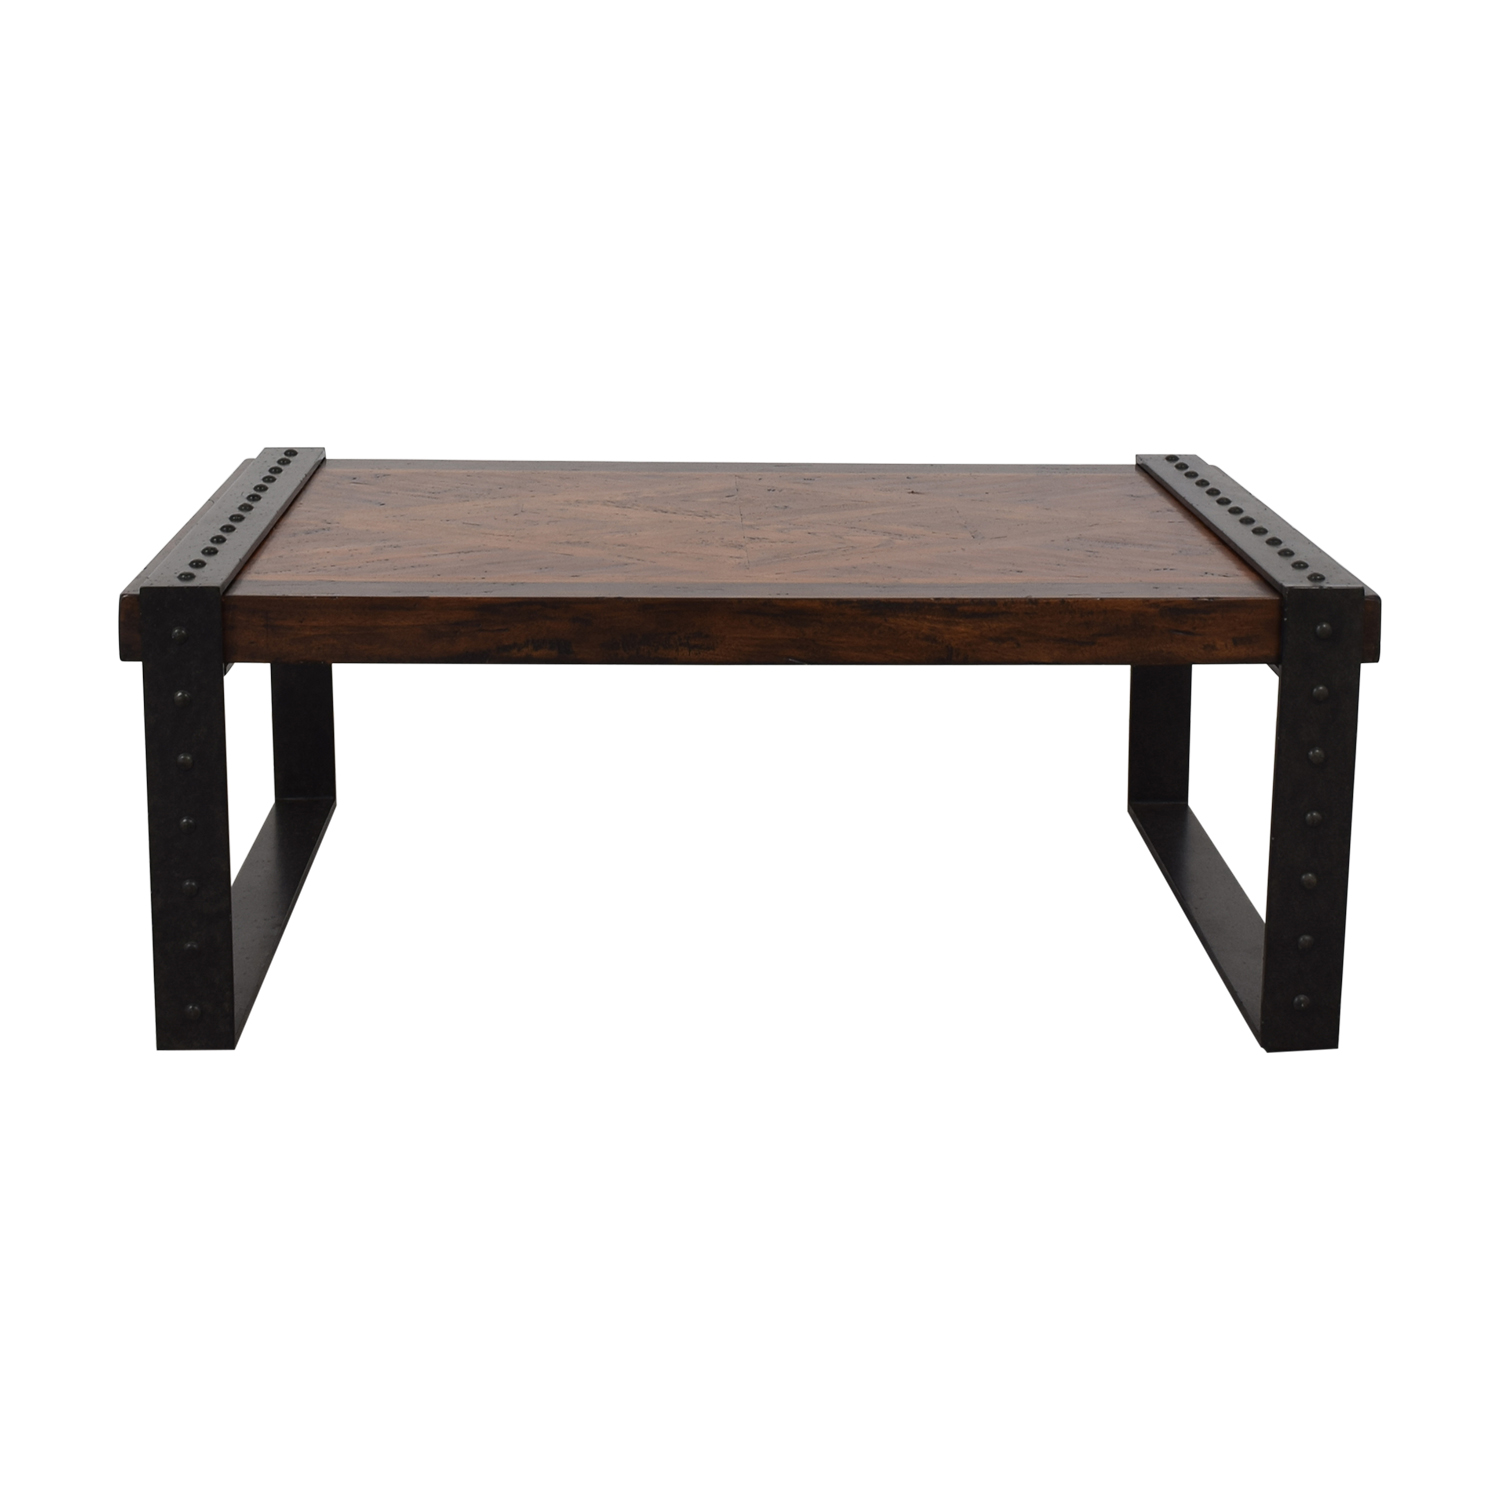 Theodore Alexander Theodore Alexander Industrial Style Coffee Table nyc